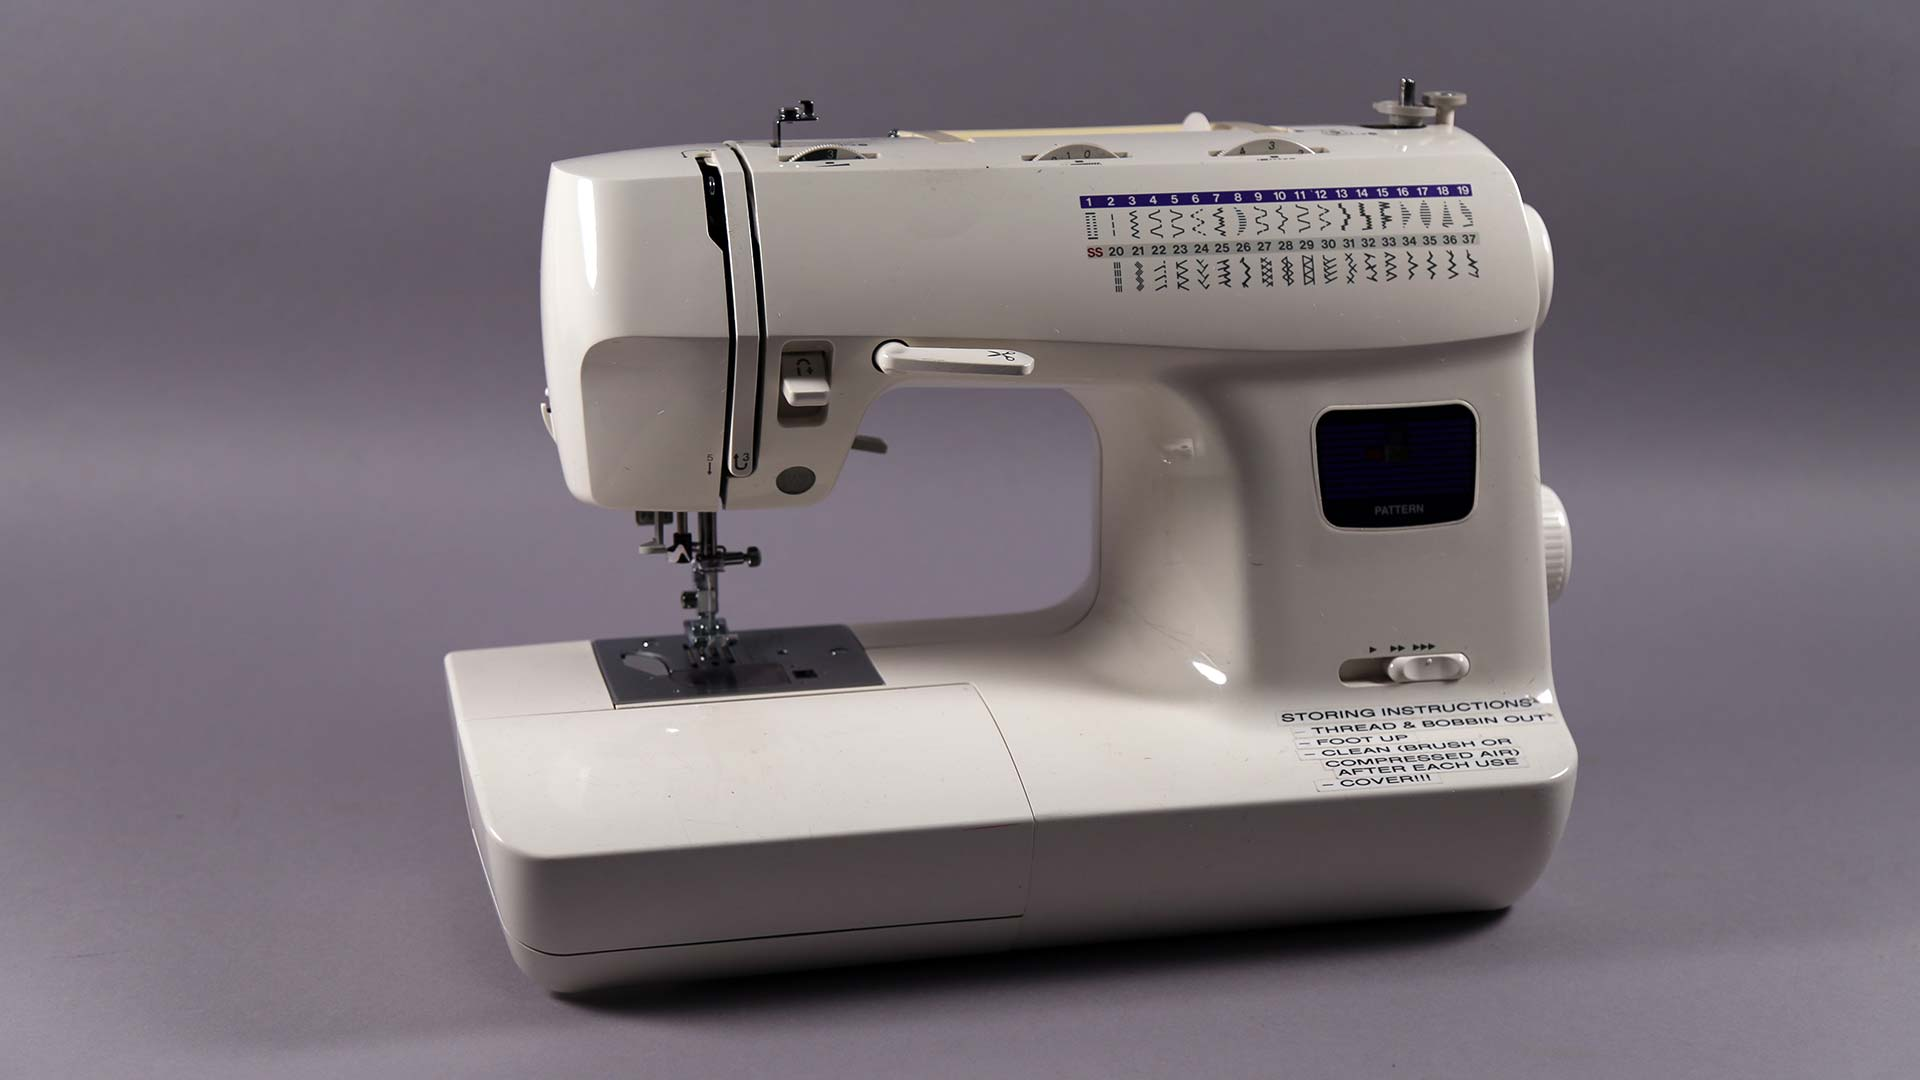 RIP Faithful Sewing Machine (2000—2016) overview image